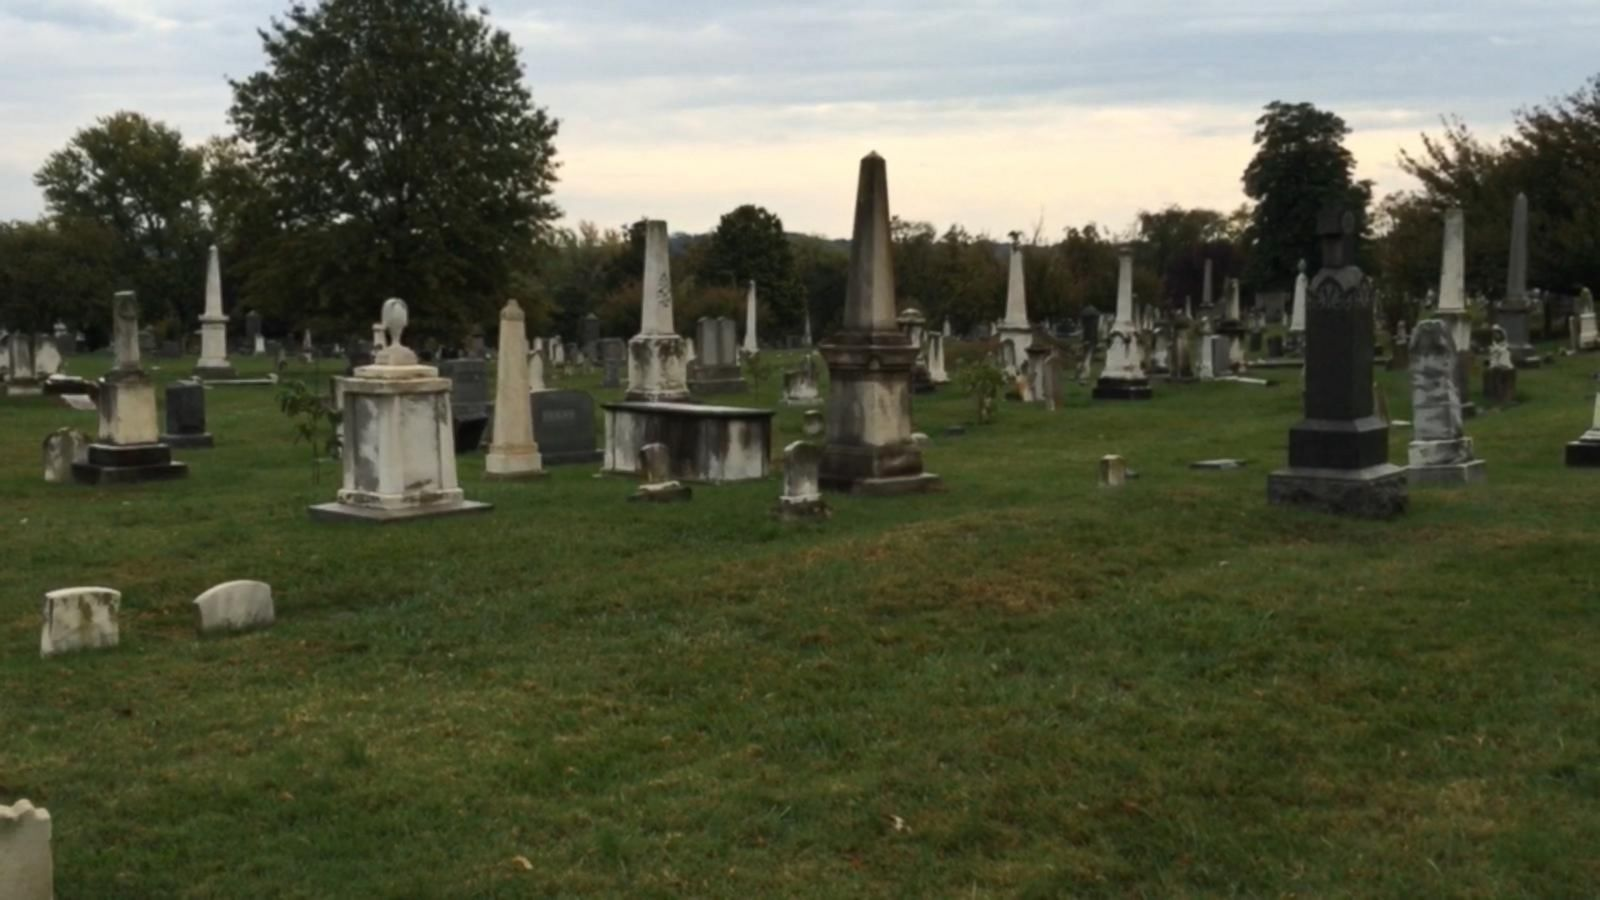 VIDEO: Tour the Congressional Cemetery in Washington, D.C.